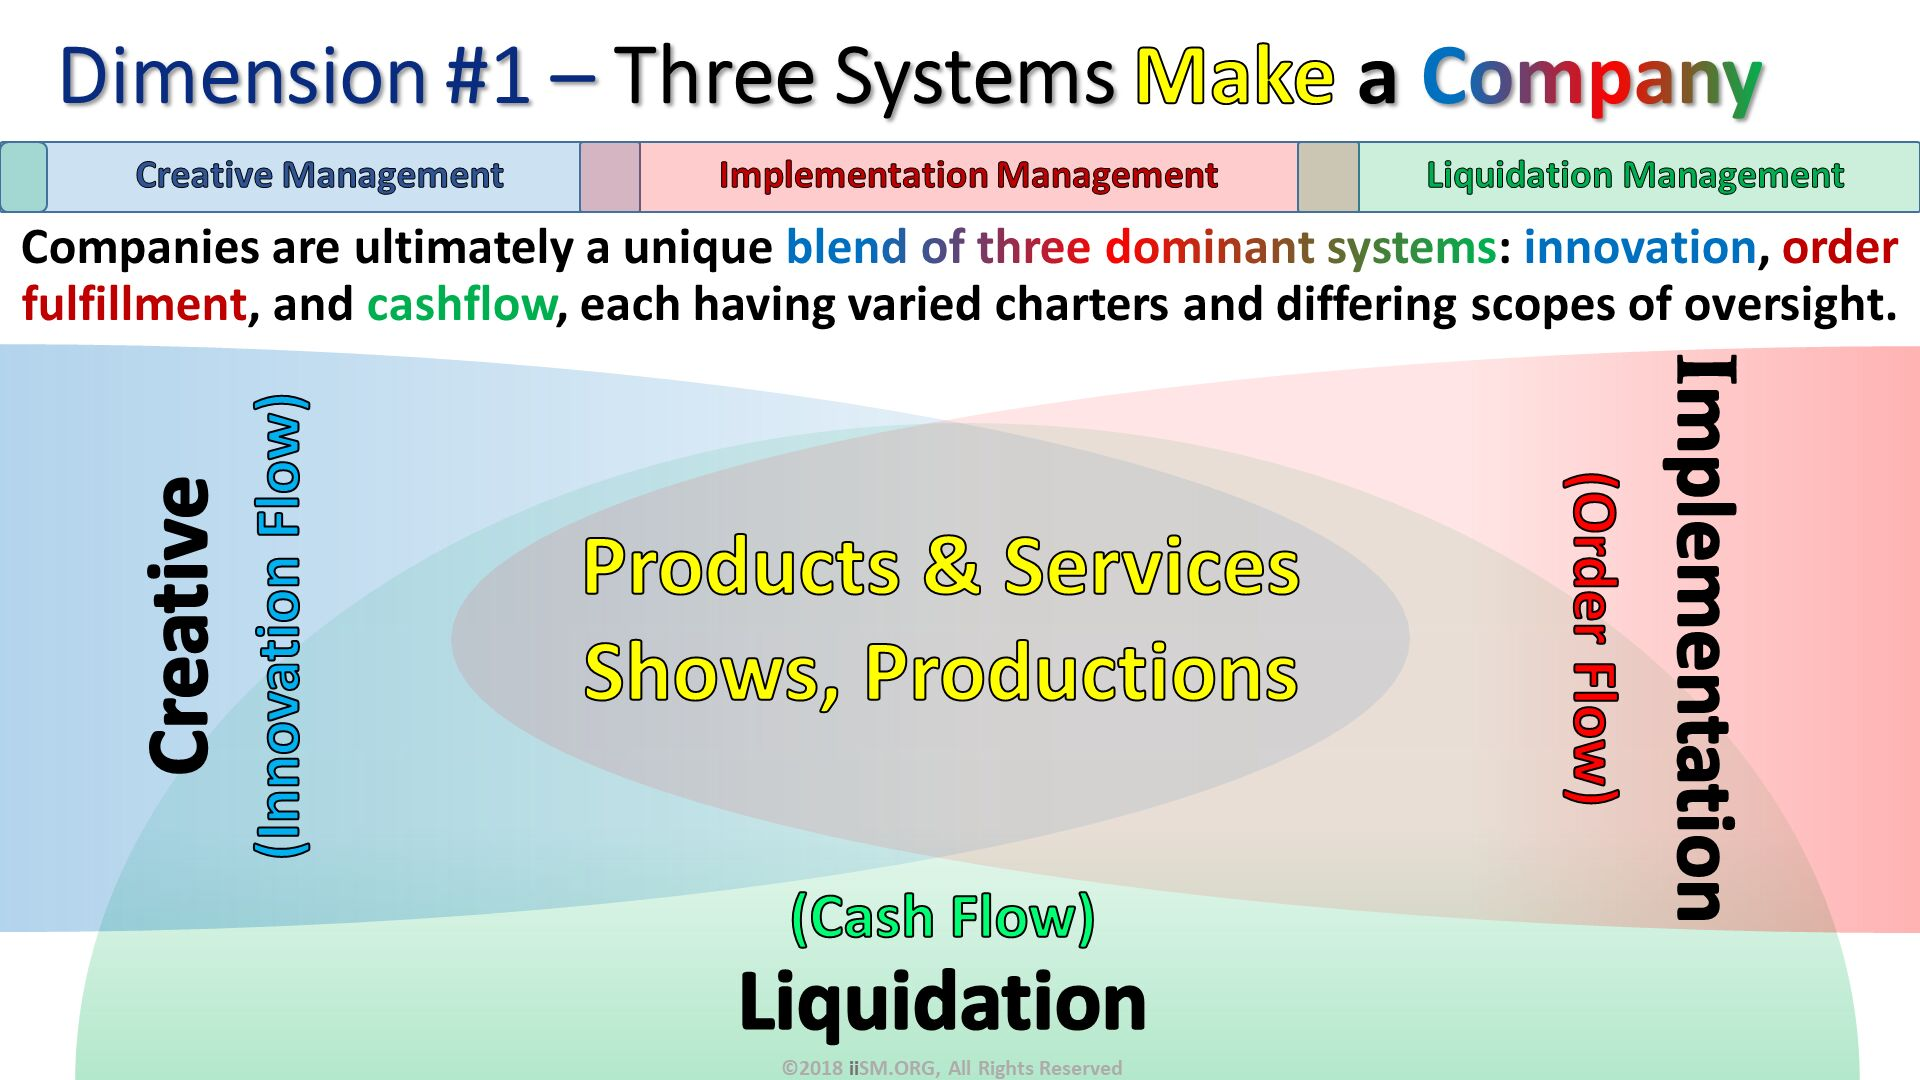 Dimension #1 – Three Systems Make a Company. Companies are ultimately a unique blend of three dominant systems: innovation, order fulfillment, and cashflow, each having varied charters and differing scopes of oversight. (Cash Flow) Liquidation. Products & Services Shows, Productions  . Creative (Innovation Flow). Implementation (Order Flow). ©2018 iiSM.ORG, All Rights Reserved.